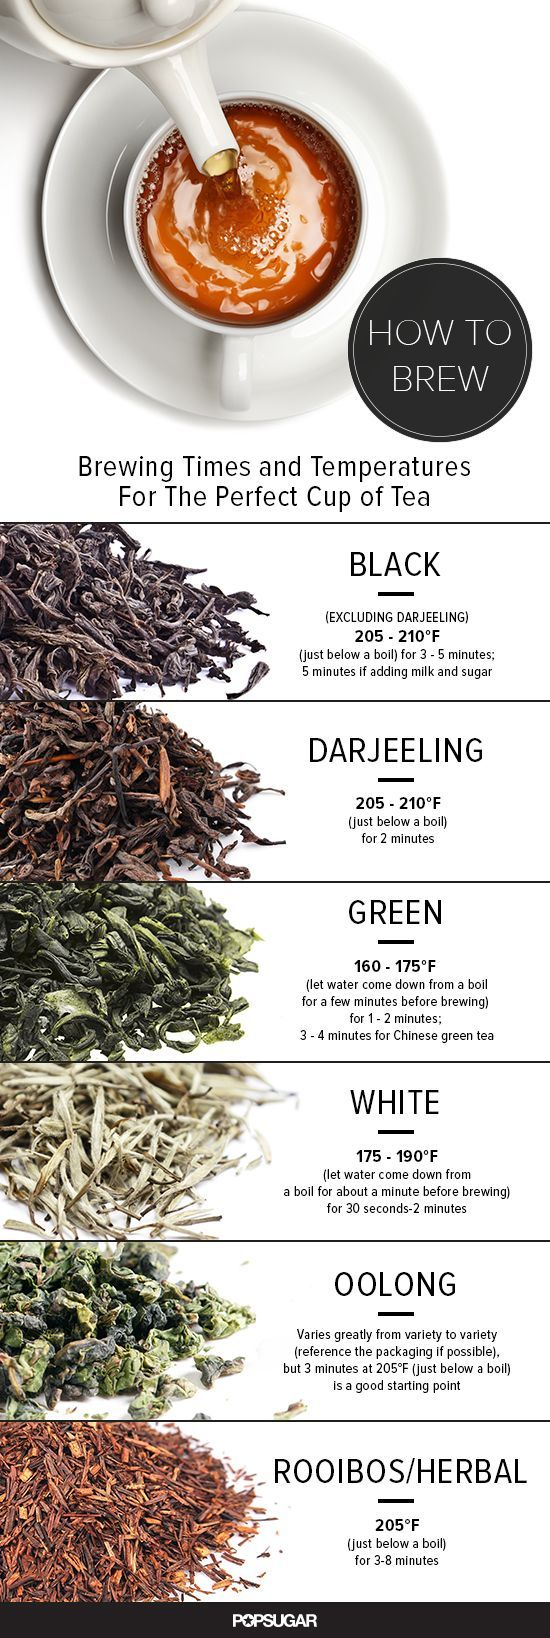 Learn how to brew tea like